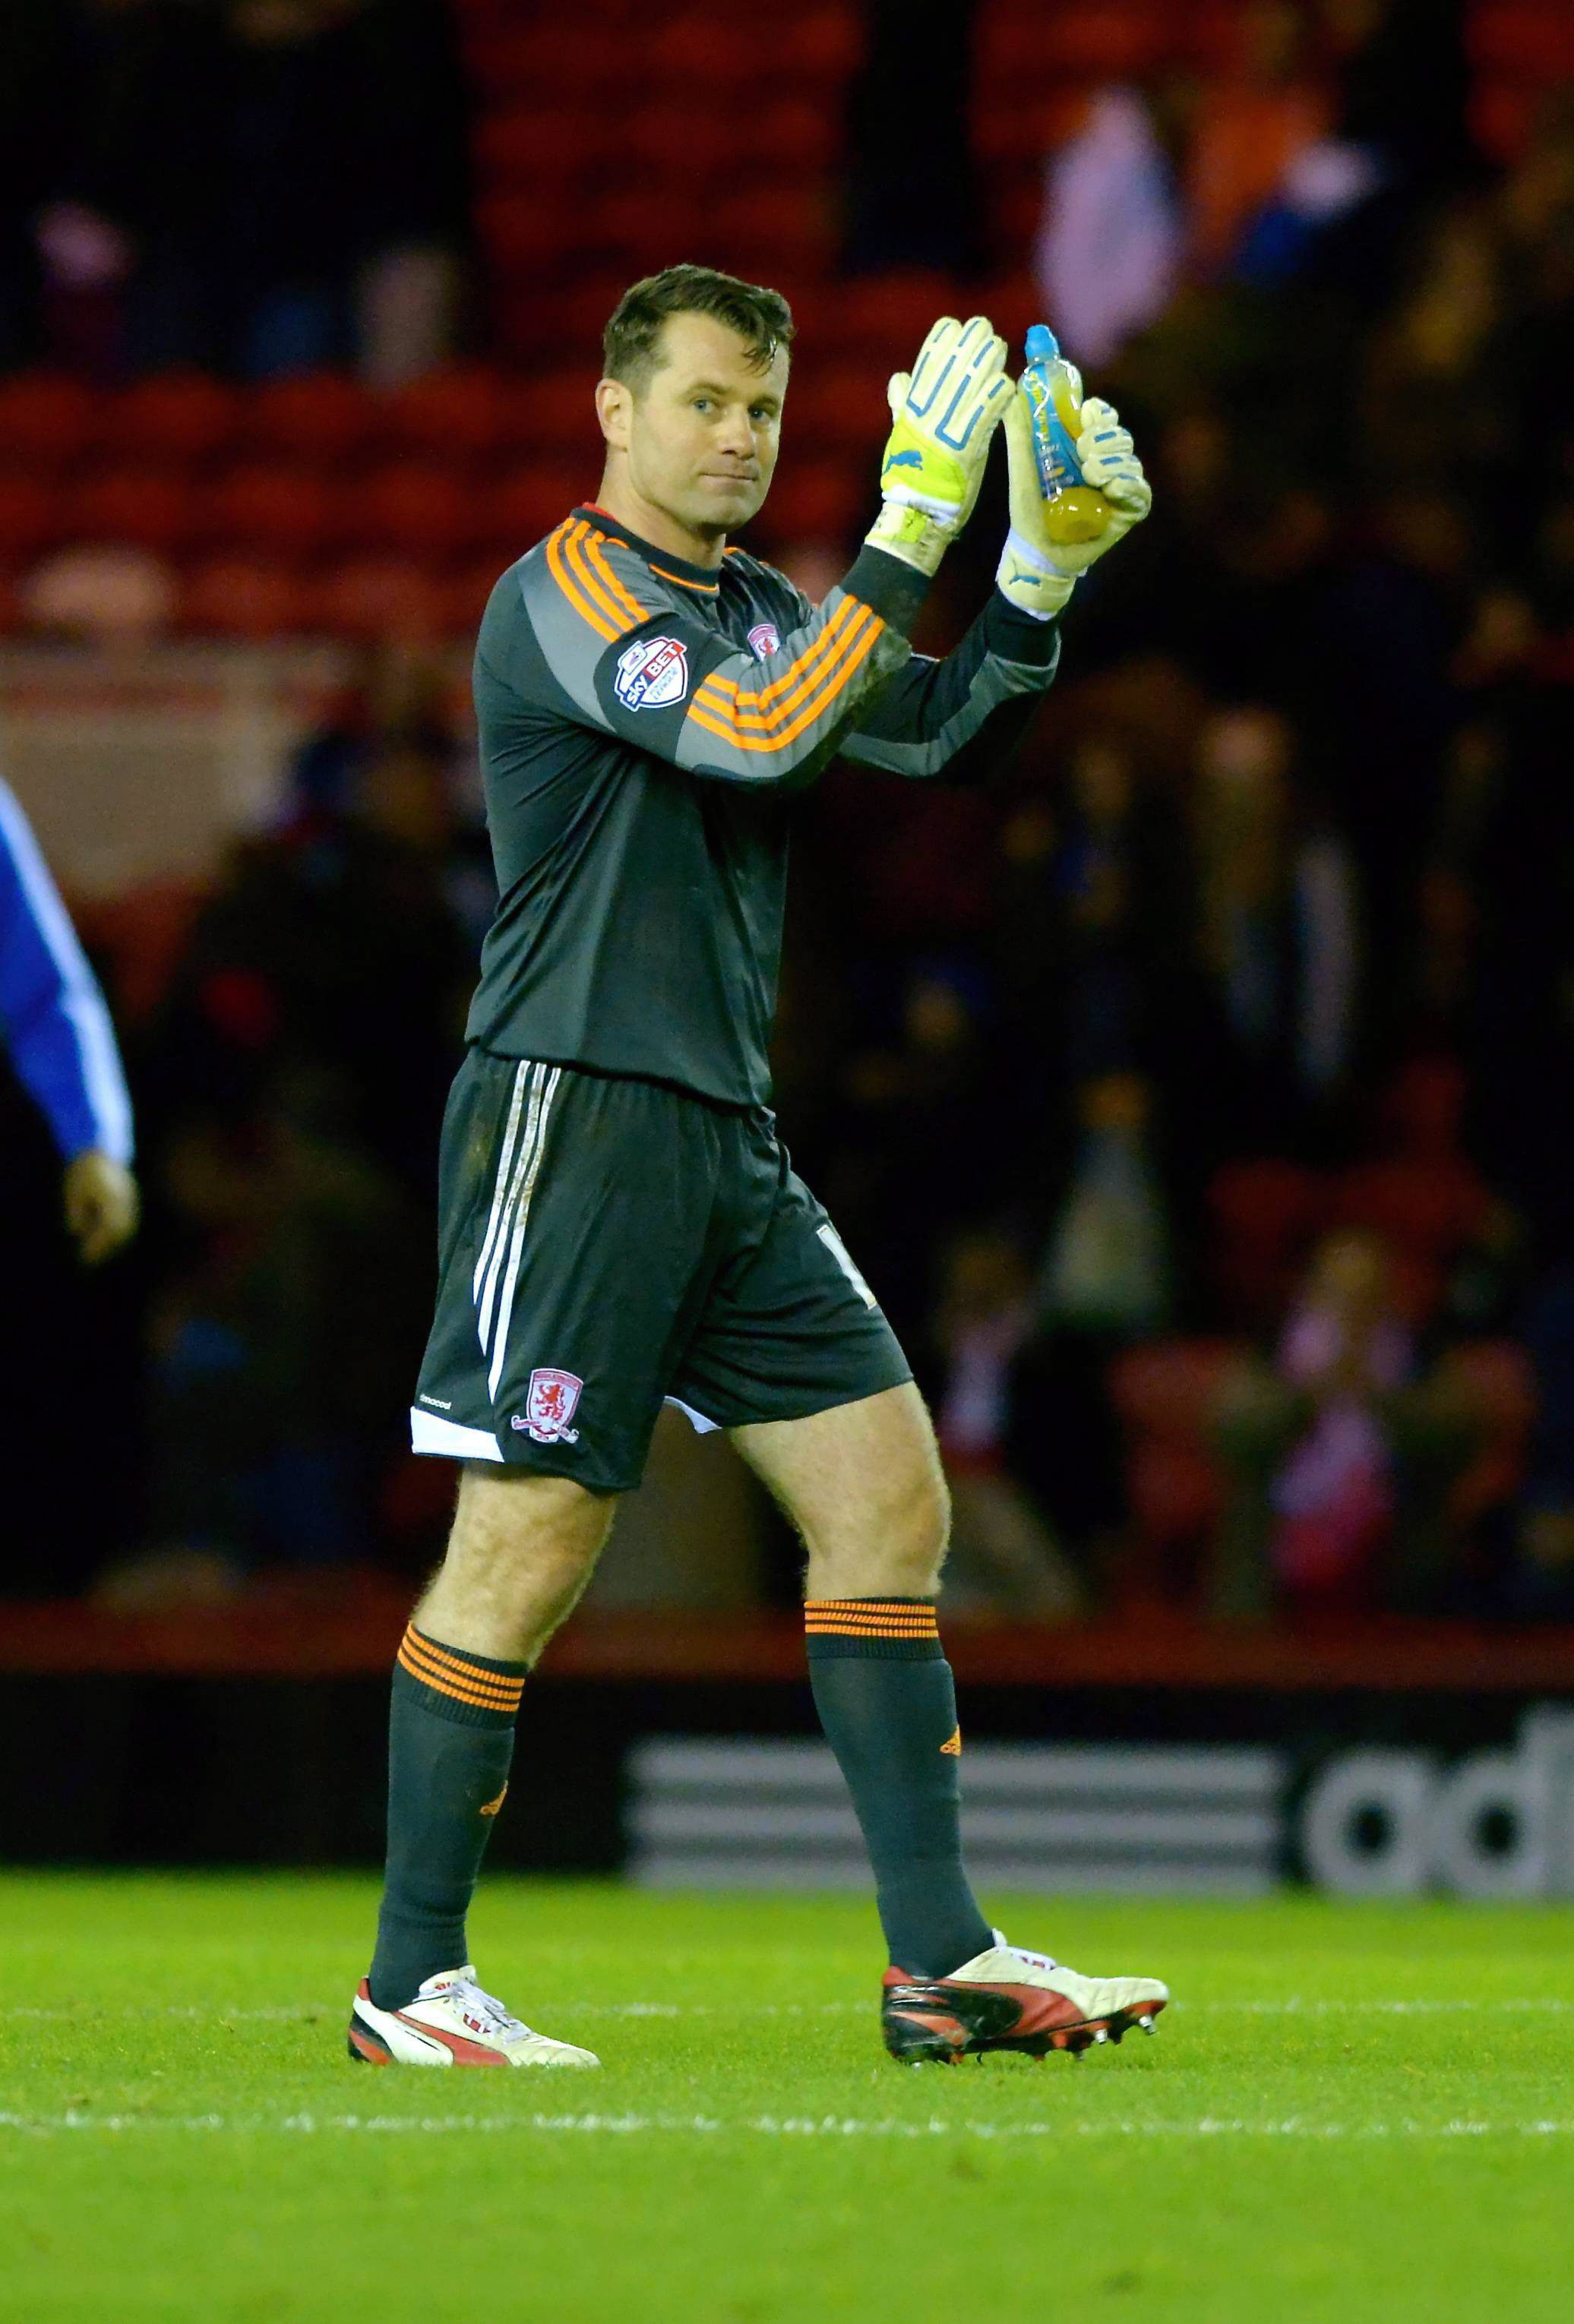 Will he stay? Shay Given was due to play his last Boro game today but will be staying until February 28